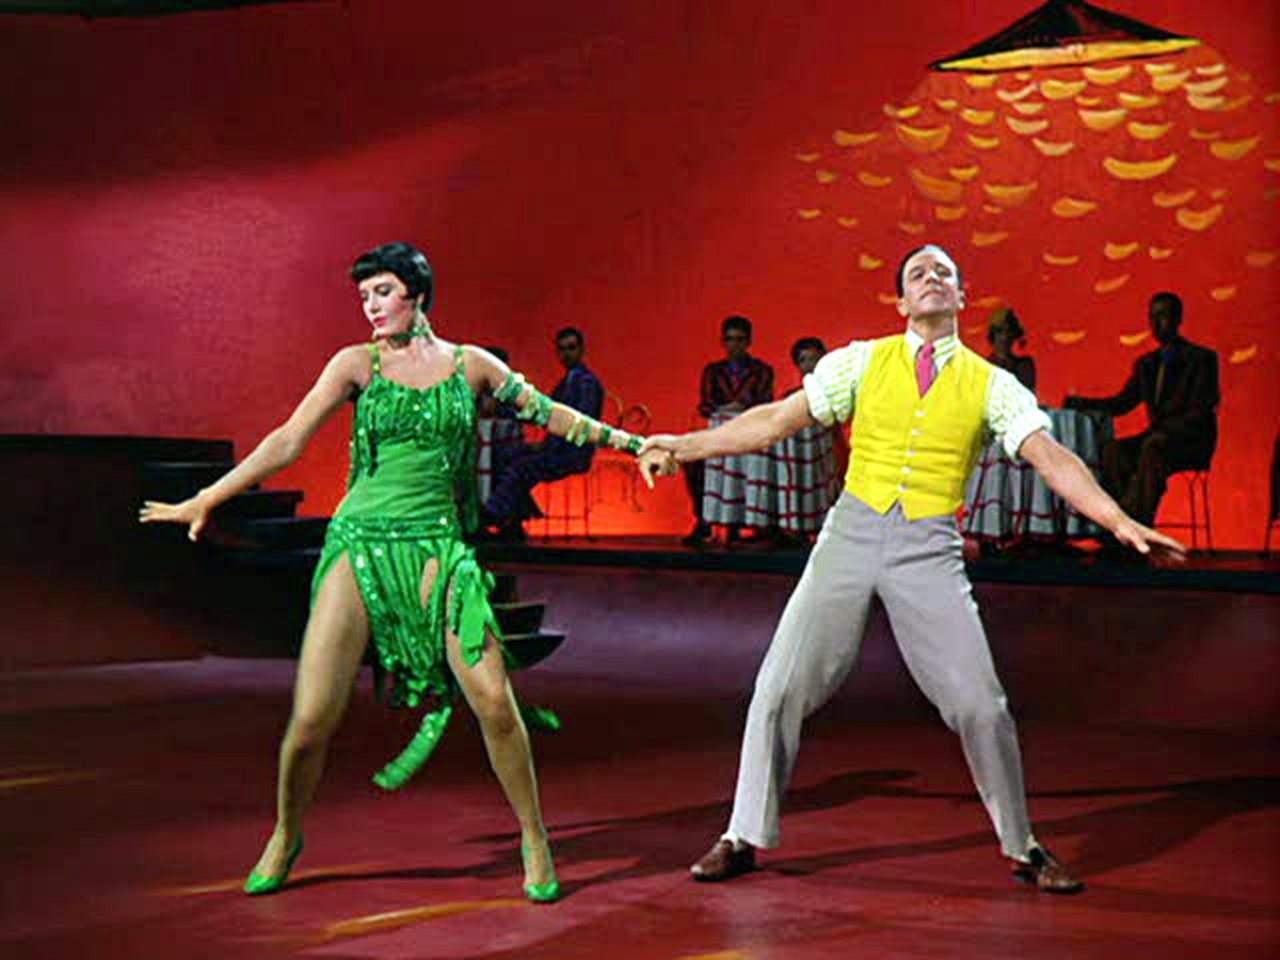 Cyd Charisse and Gene Kelly